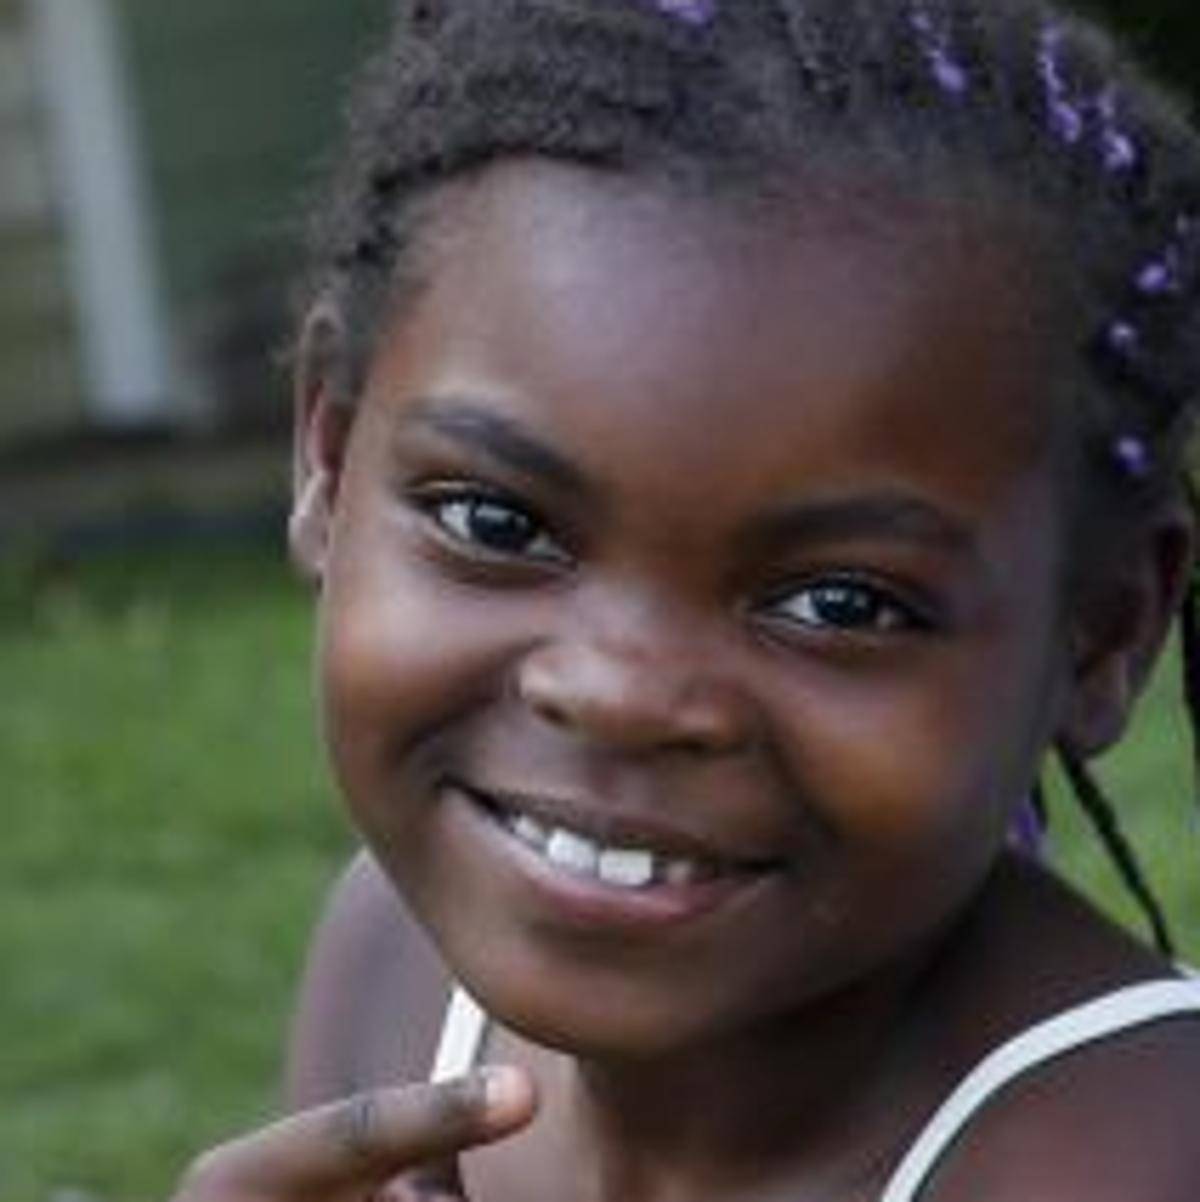 Shots fired into Ferguson home kill 9-year-old girl, injure